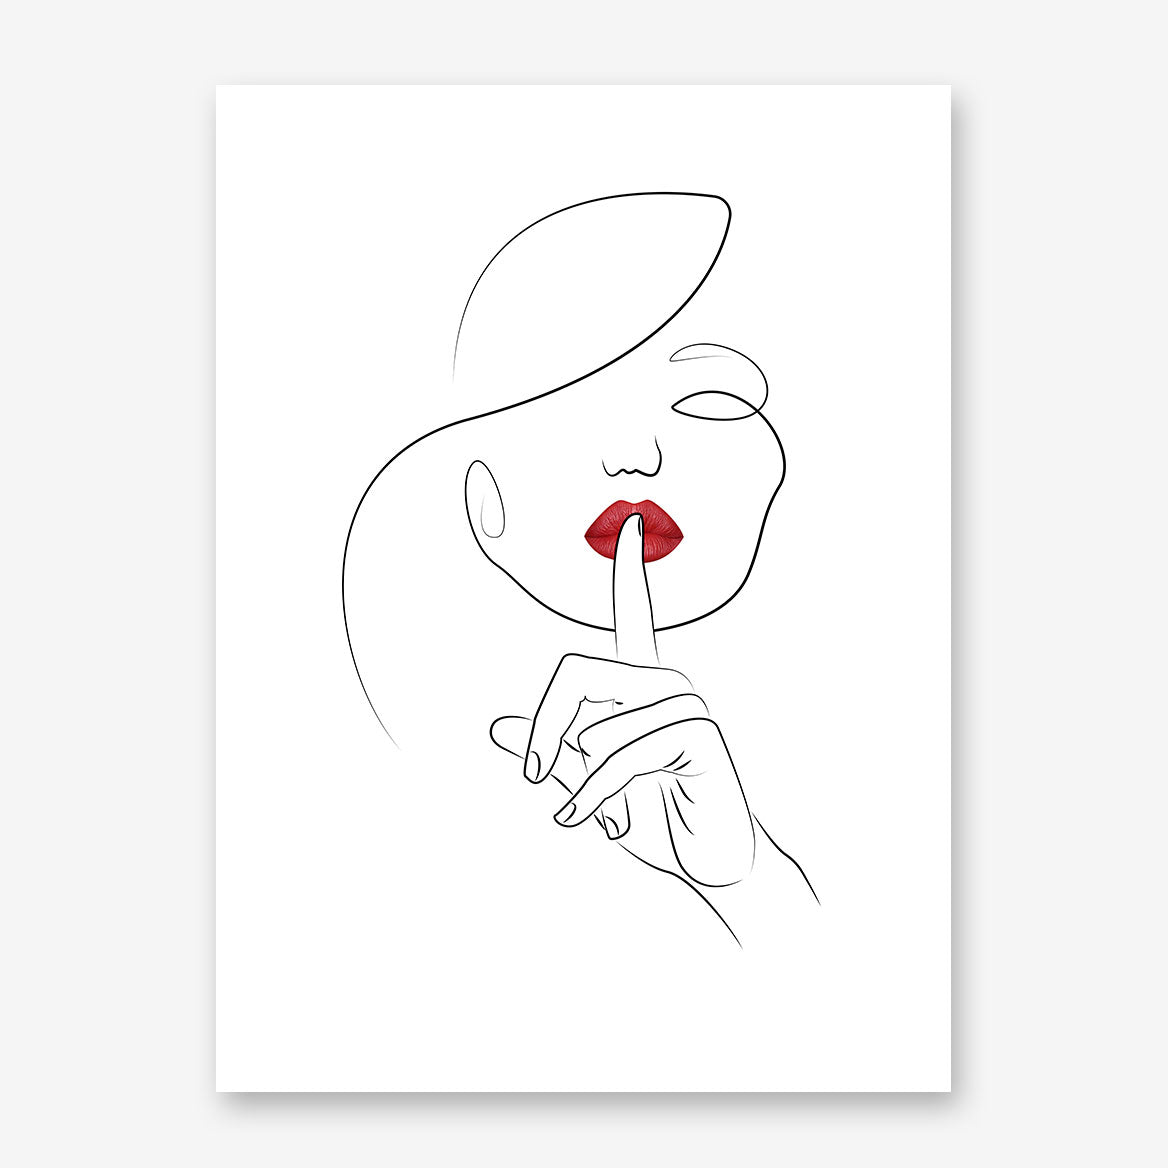 Beautiful line art poster print with shhh woman with red lips.